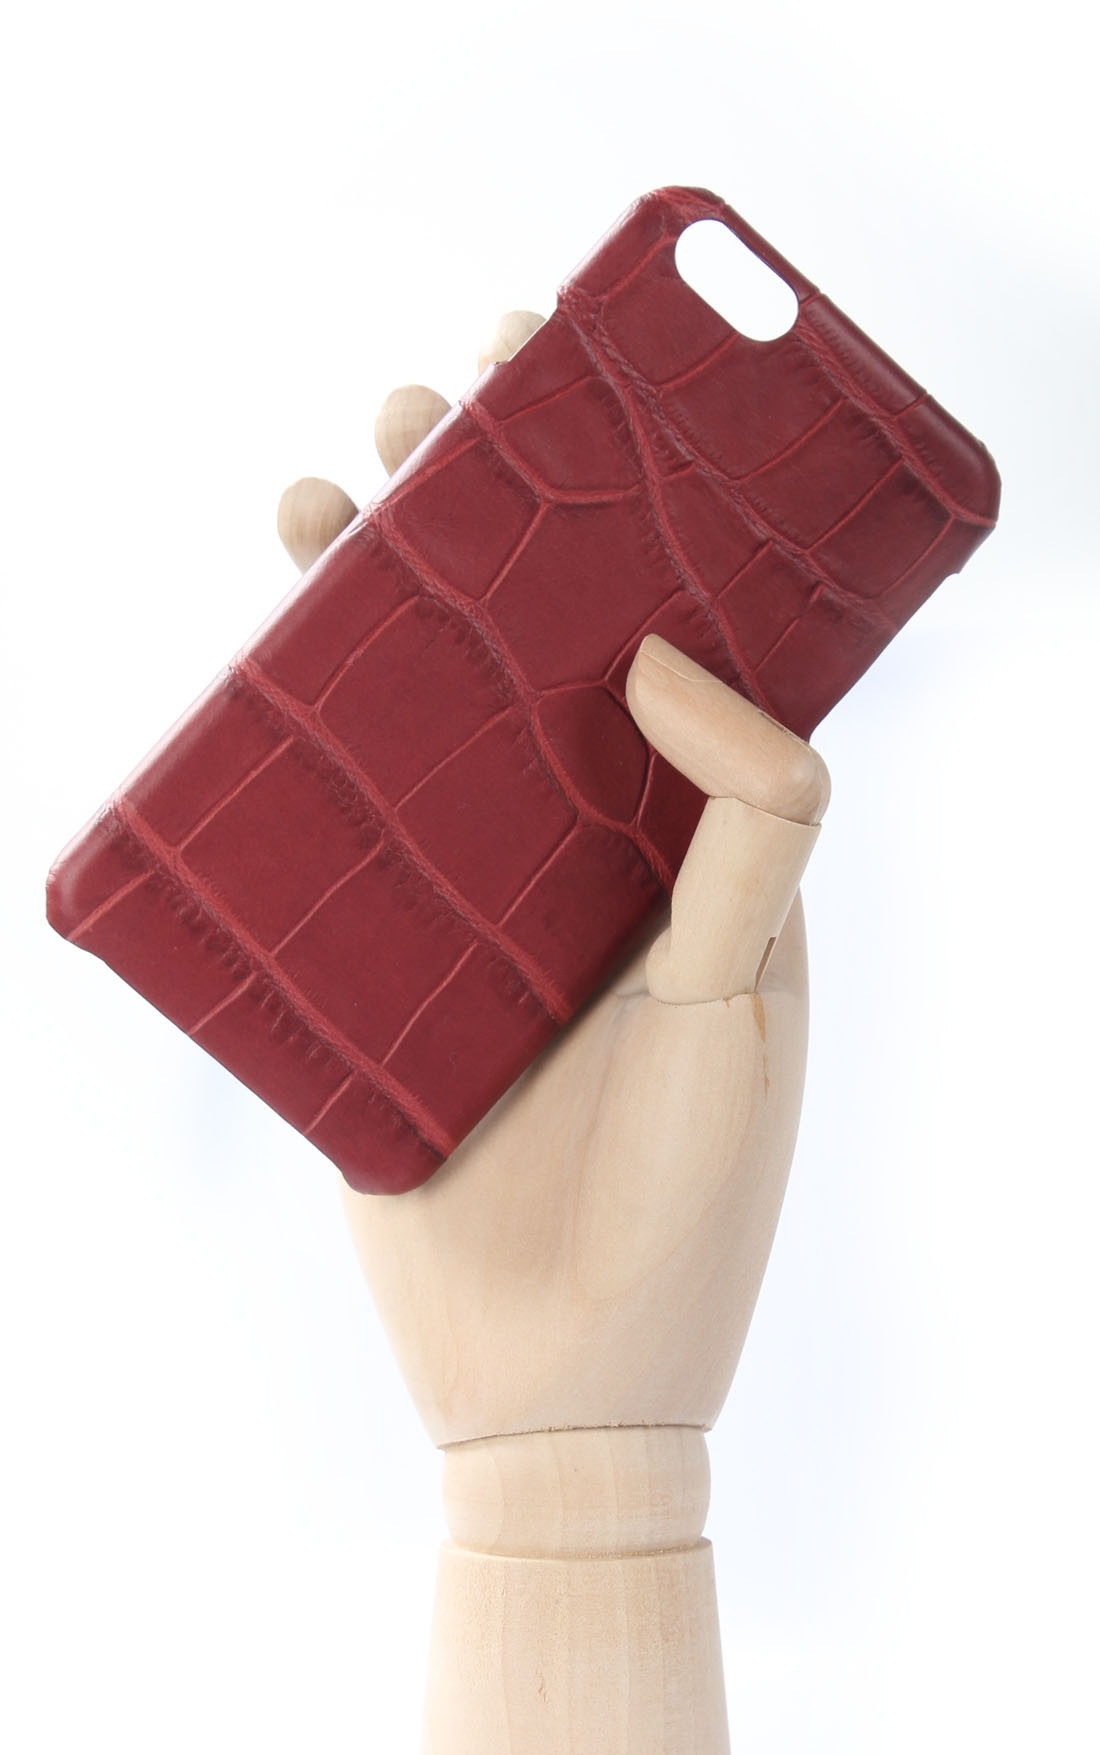 The Case Factory - Crocodile Bordo iPhone 6 Plus (102046)